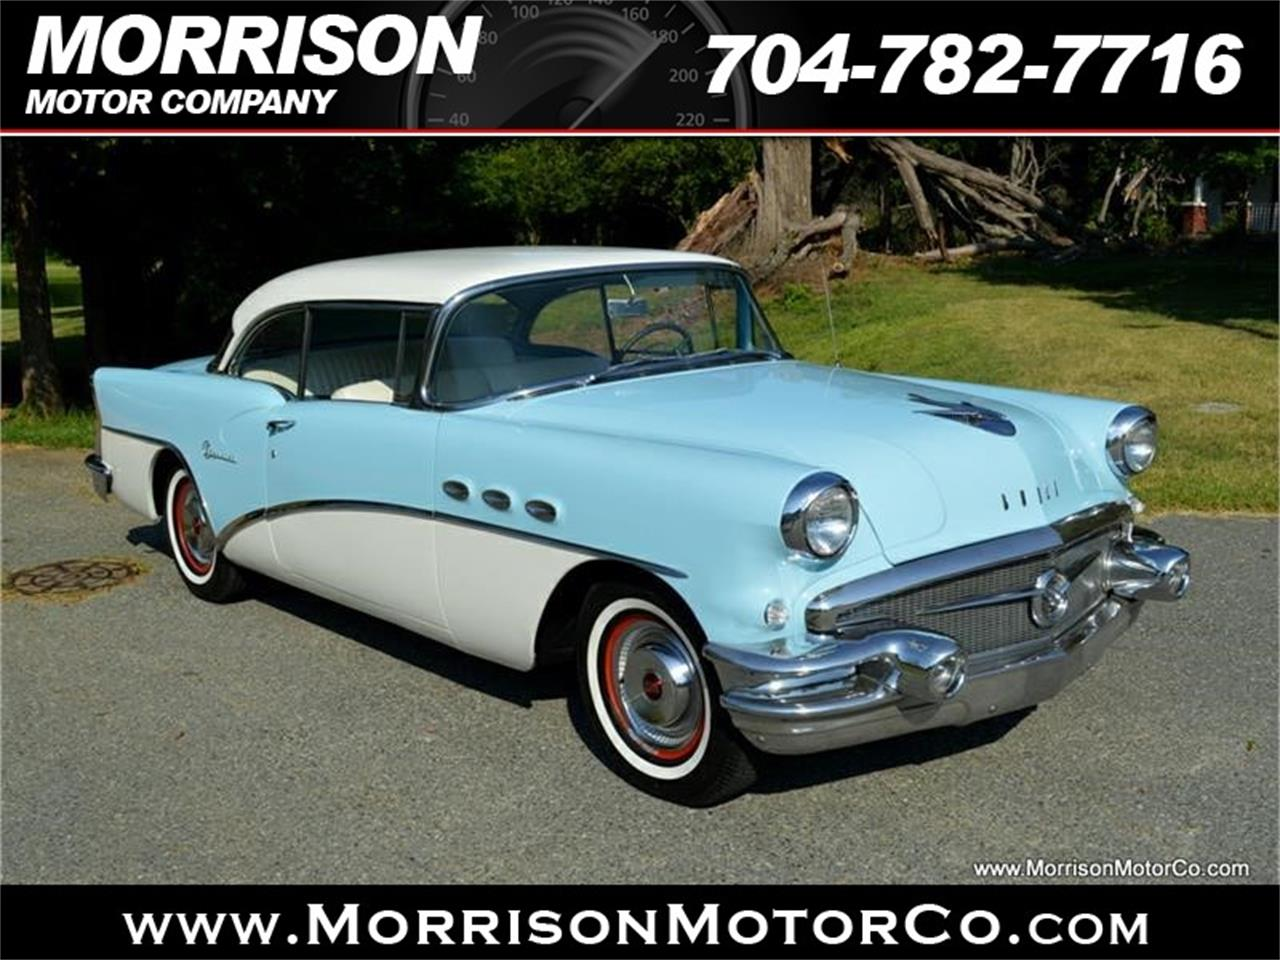 Large Picture of Classic 1956 Special Riviera located in North Carolina Offered by Morrison Motor Company - M8P8